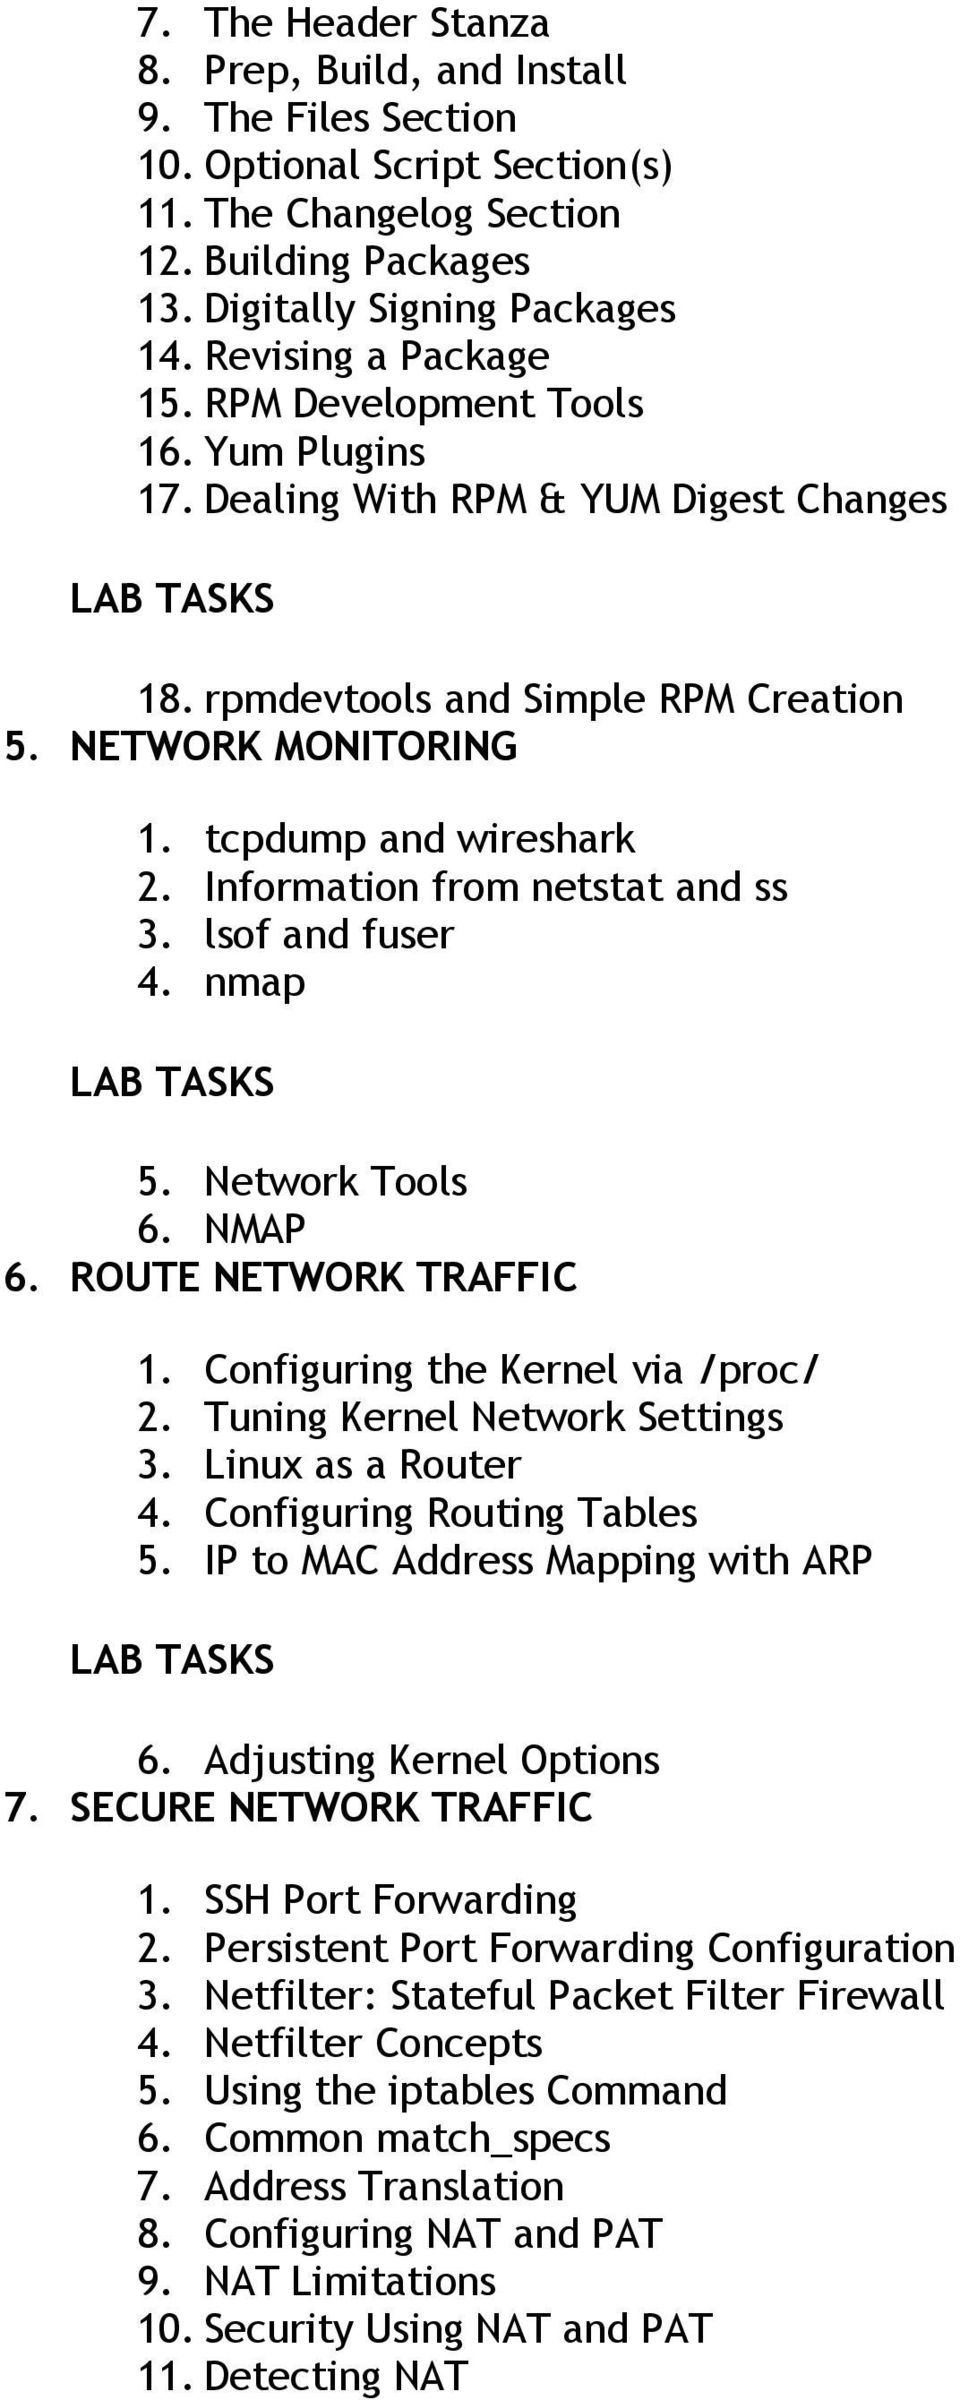 Information from netstat and ss 3. lsof and fuser 4. nmap 5. Network Tools 6. NMAP 6. ROUTE NETWORK TRAFFIC 1. Configuring the Kernel via /proc/ 2. Tuning Kernel Network Settings 3.